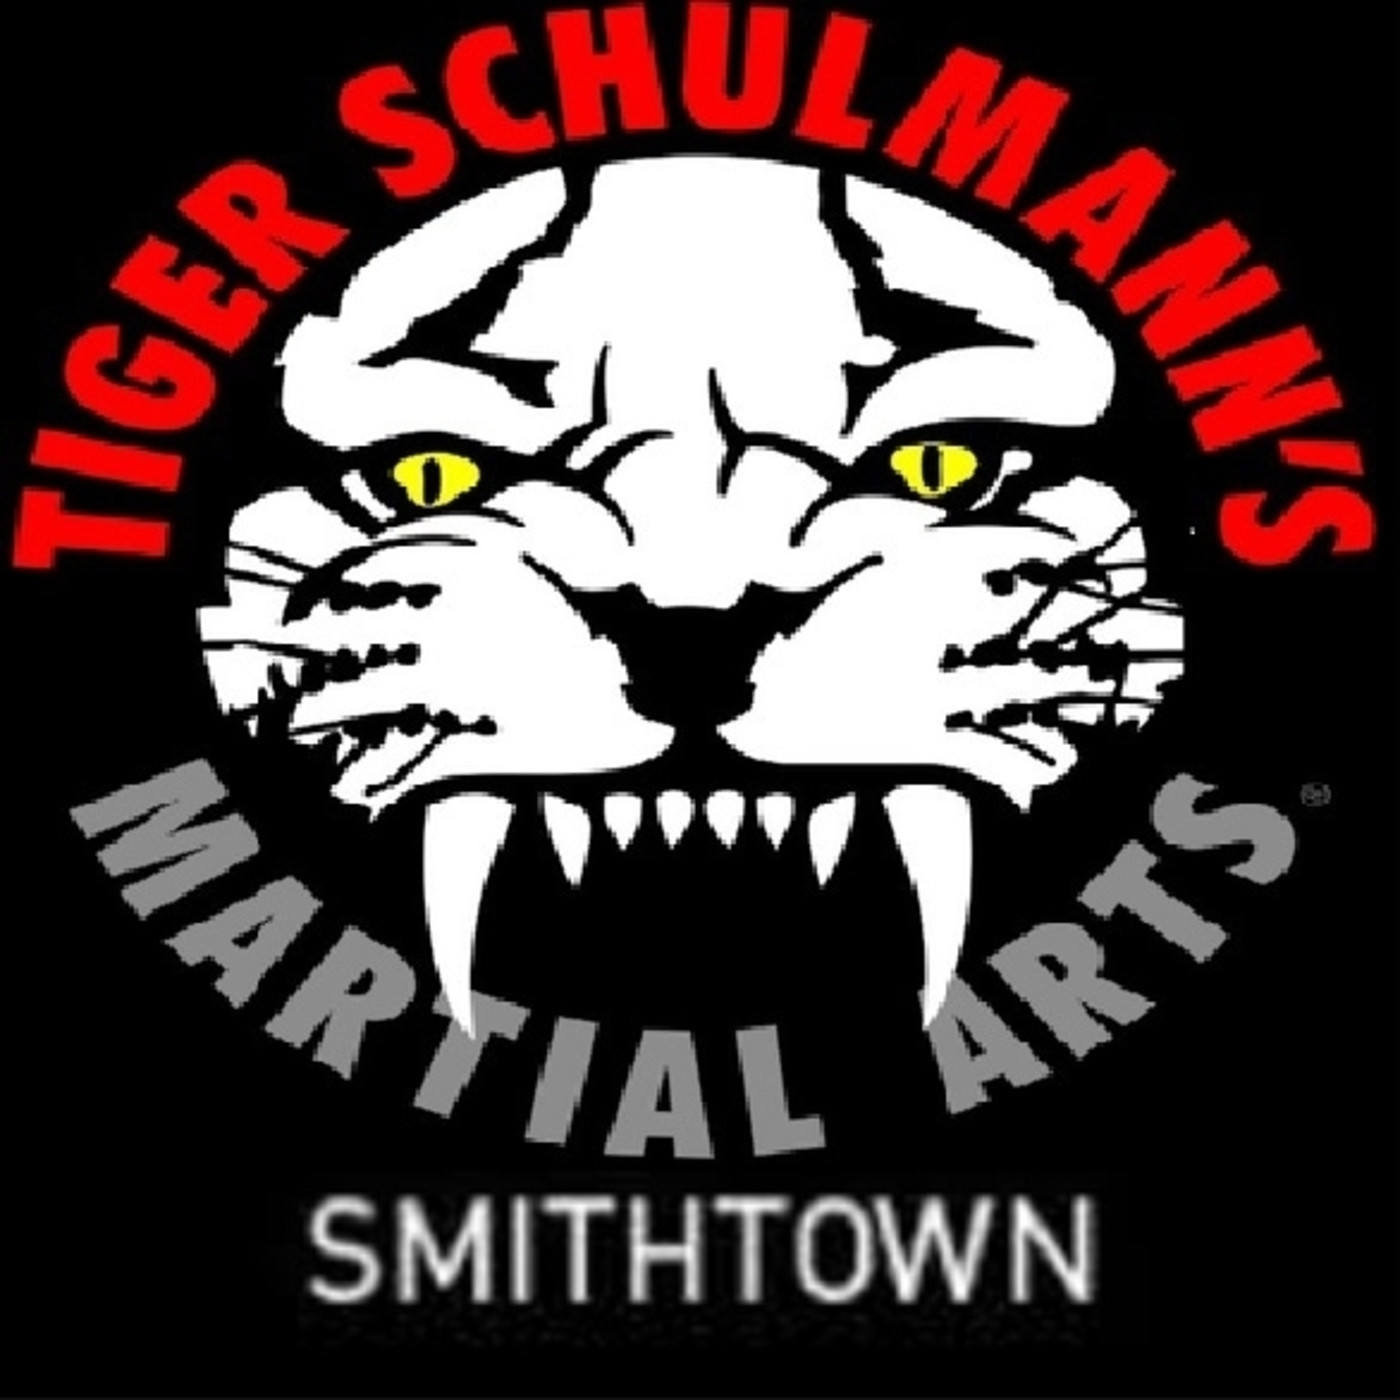 The Tiger Schulmann's Smithtown Podcast